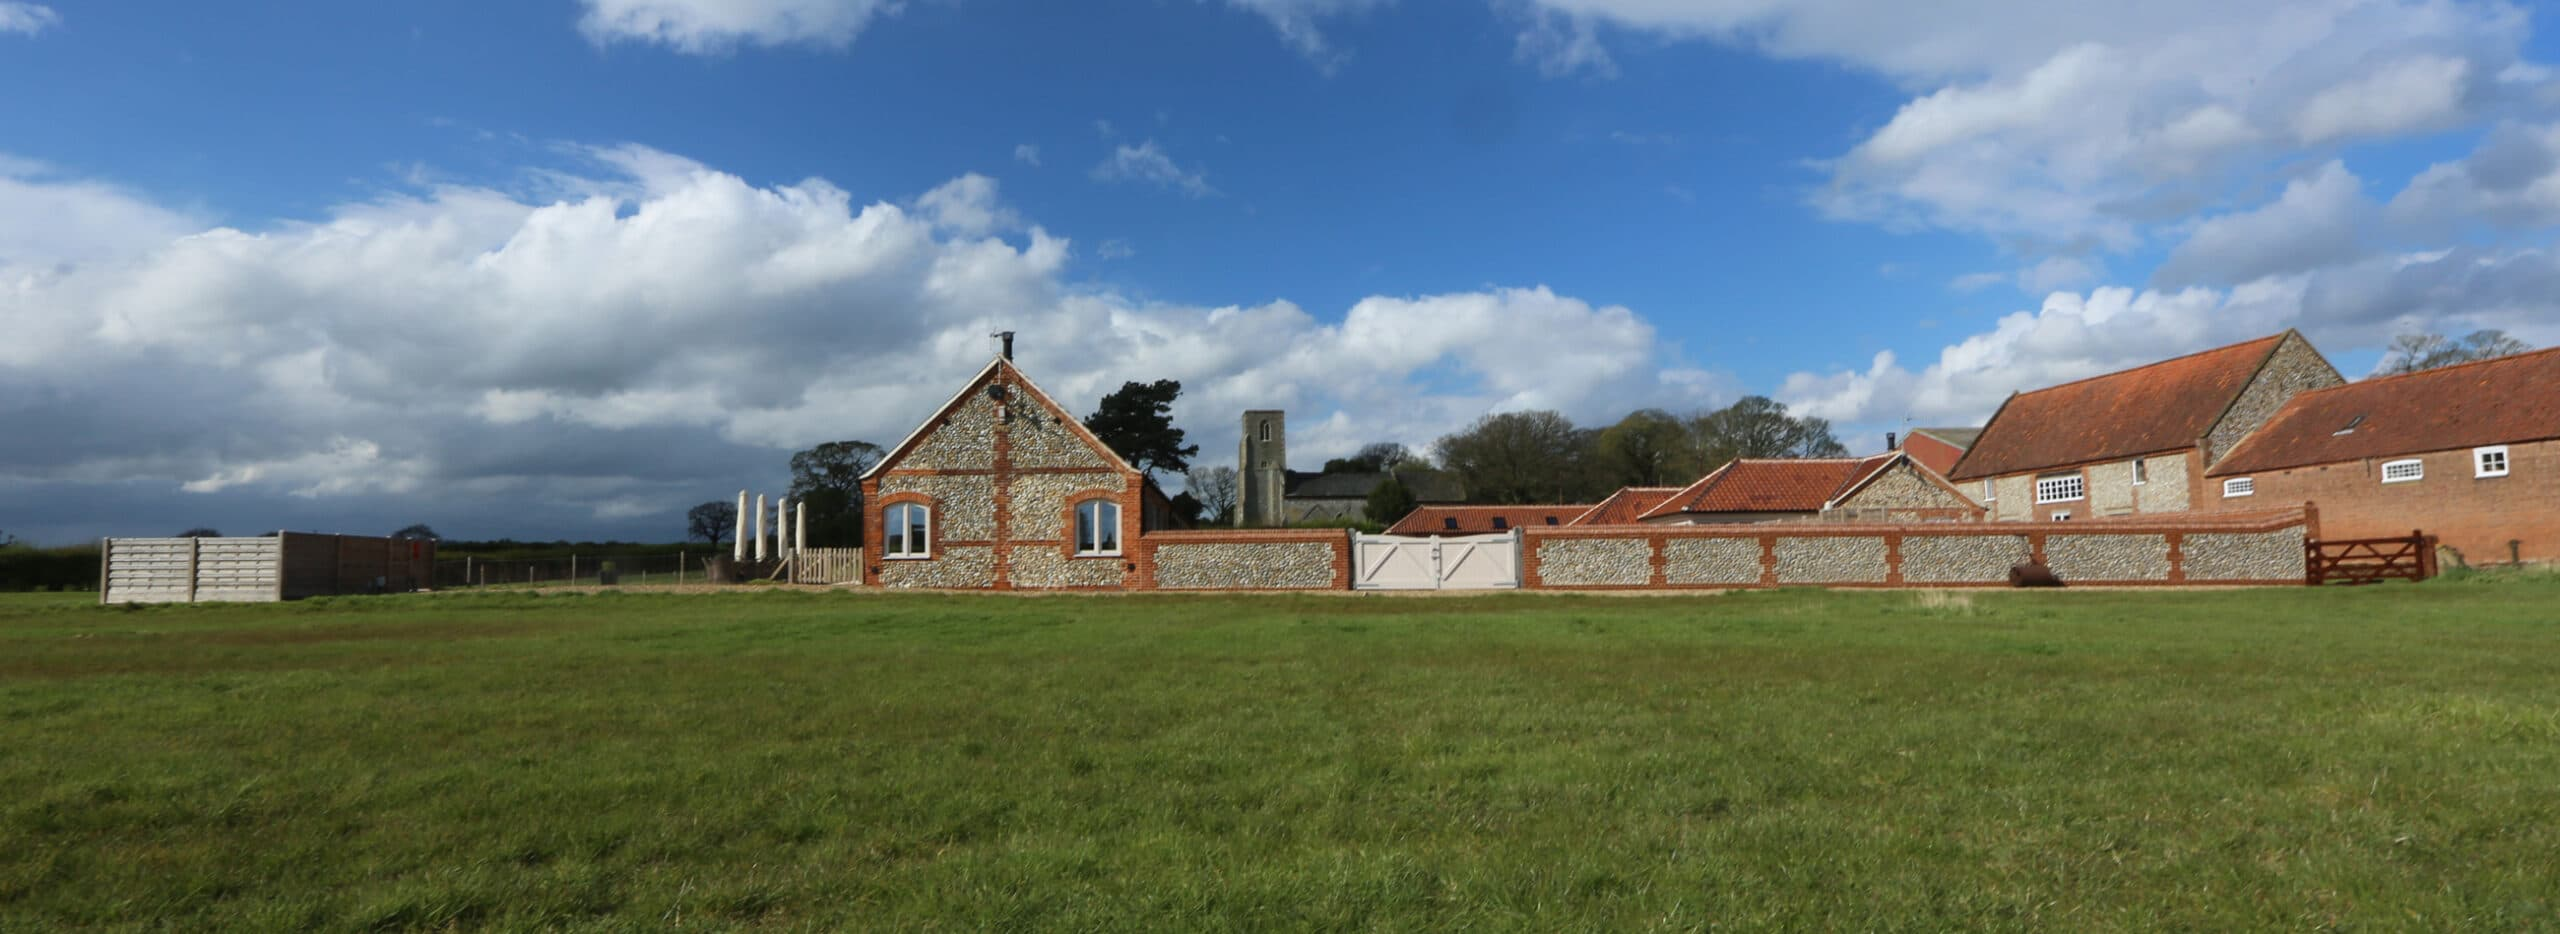 The barn - The lodge - St Peter church slider image